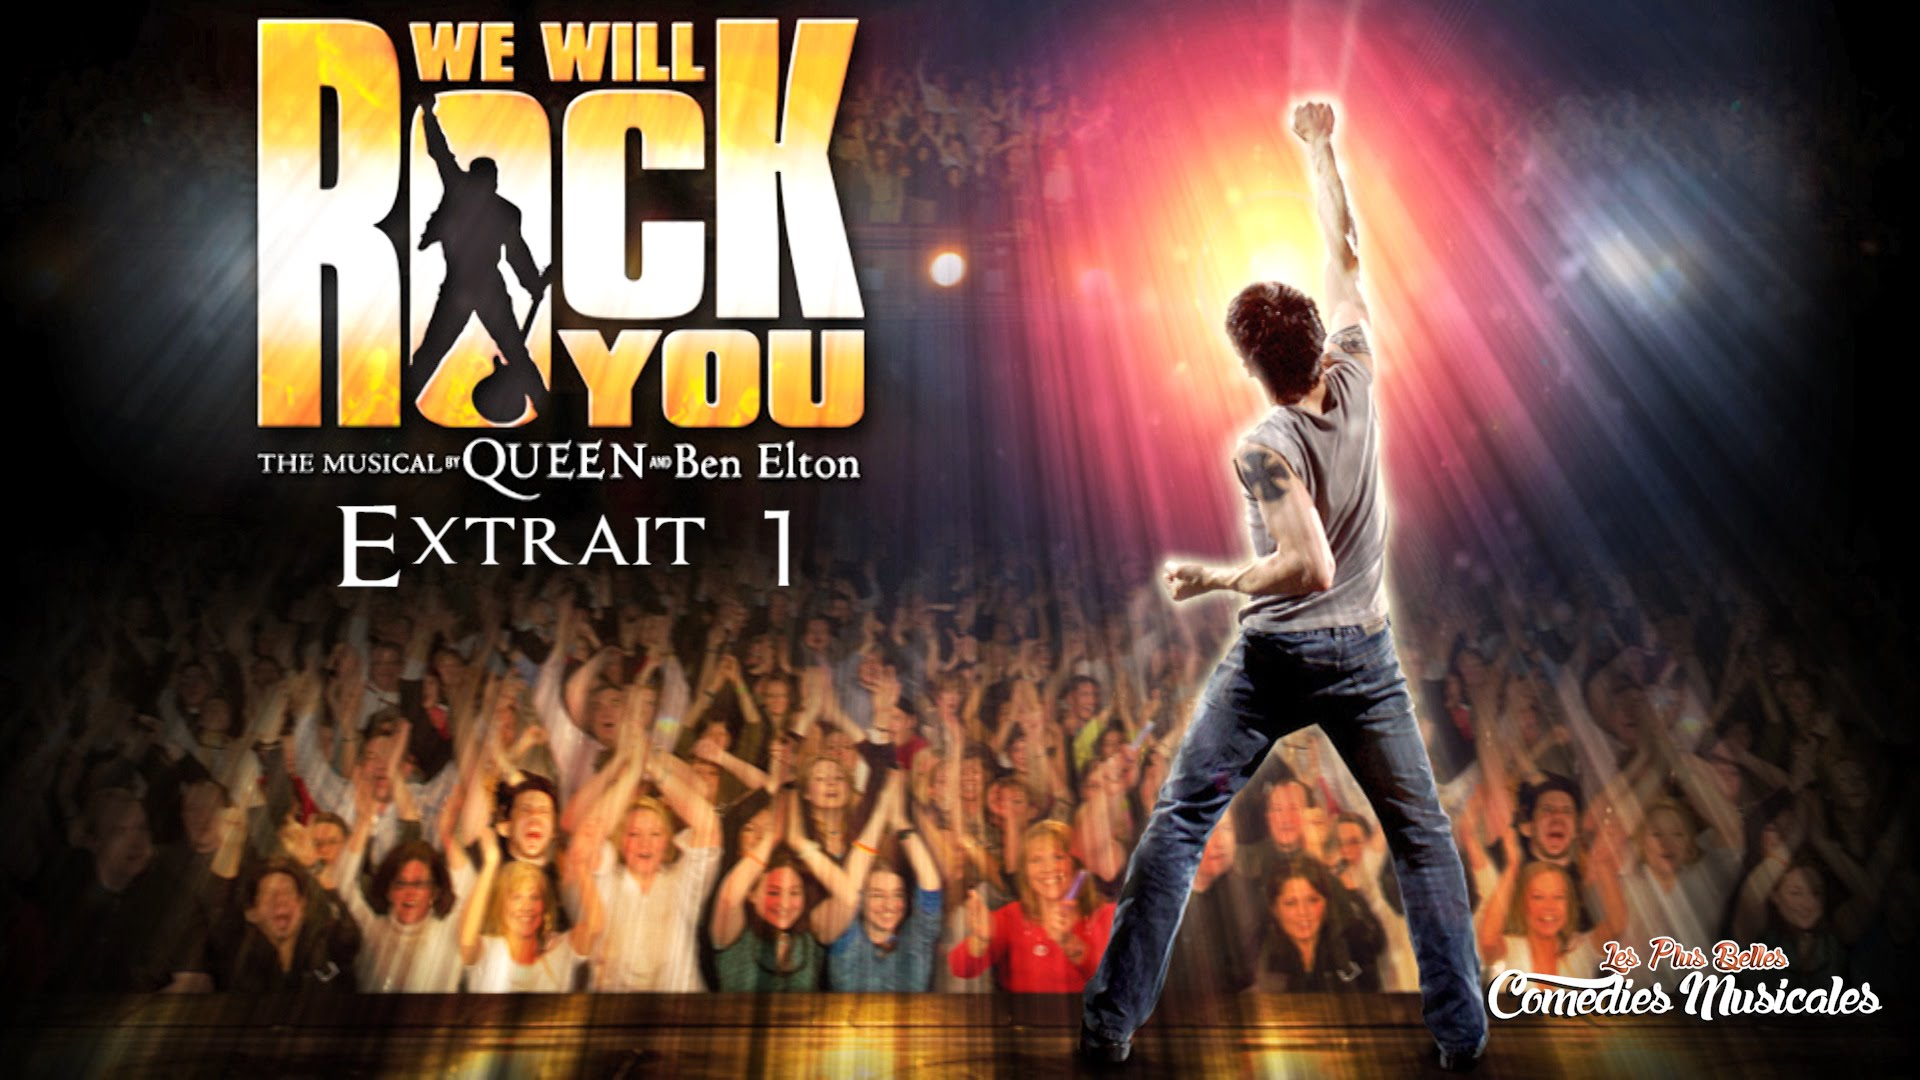 Comédie Musicale : We will rock you, Nathan Show World, Paris 75012